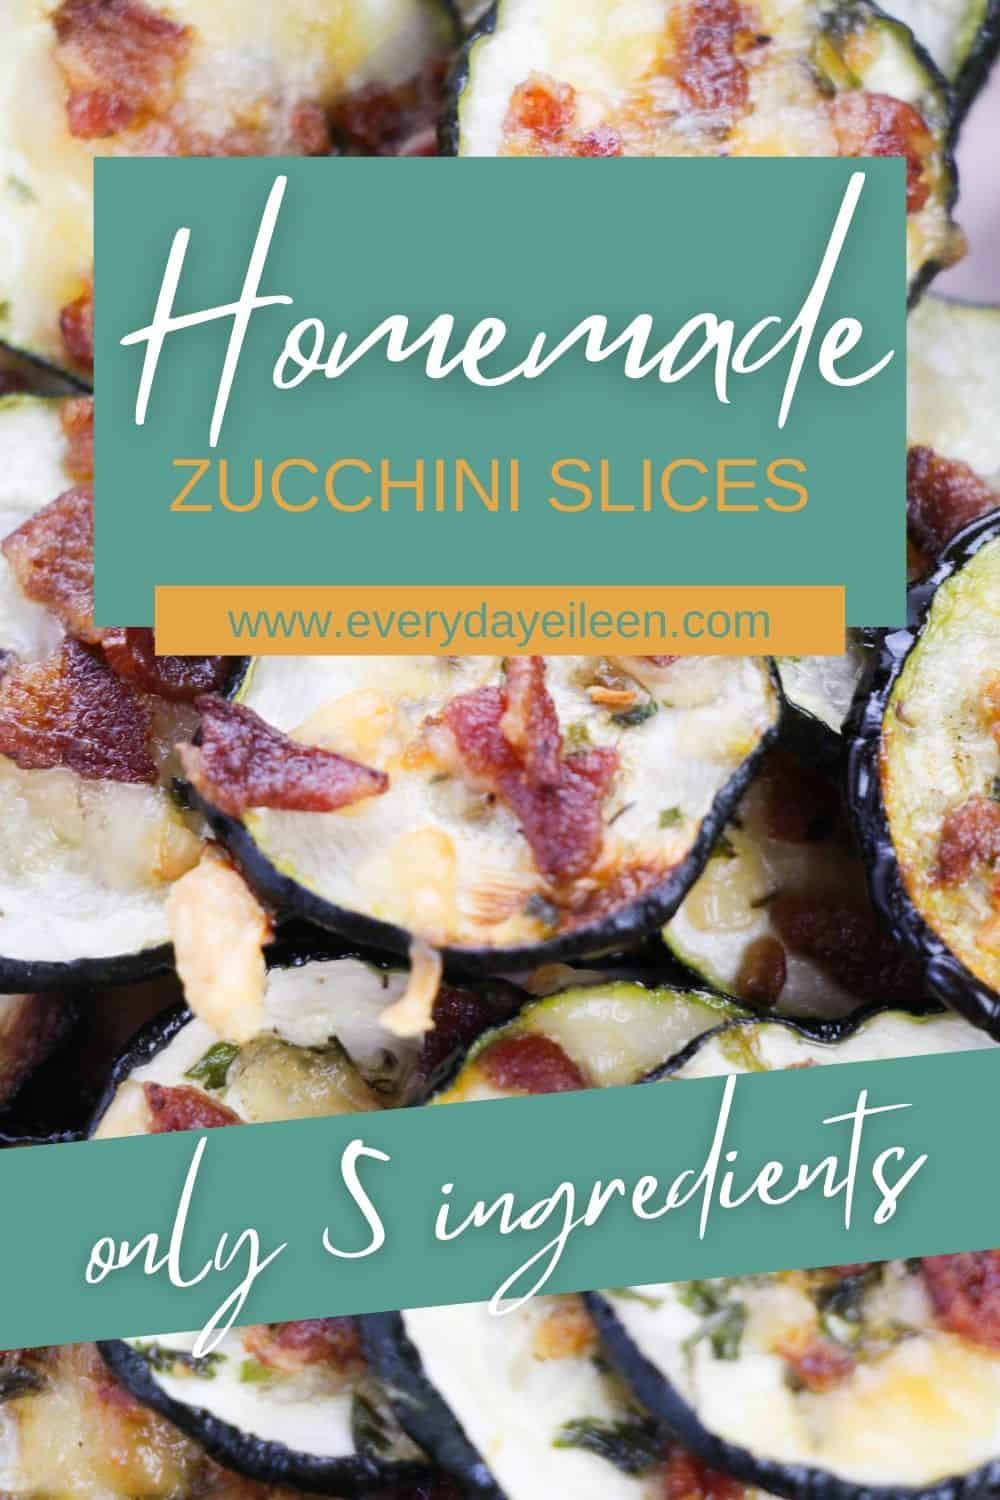 Enjoy homemade Parmesan Zucchini Slices, baked in the oven and topped with cheesy goodness from Parmesan cheese and diced crispy bacon. This is a low-carb snack or side dish. Serve with dip for a great snack. #zucchinislices #zucchinichips #everydayeileen   via @/everydayeileen/